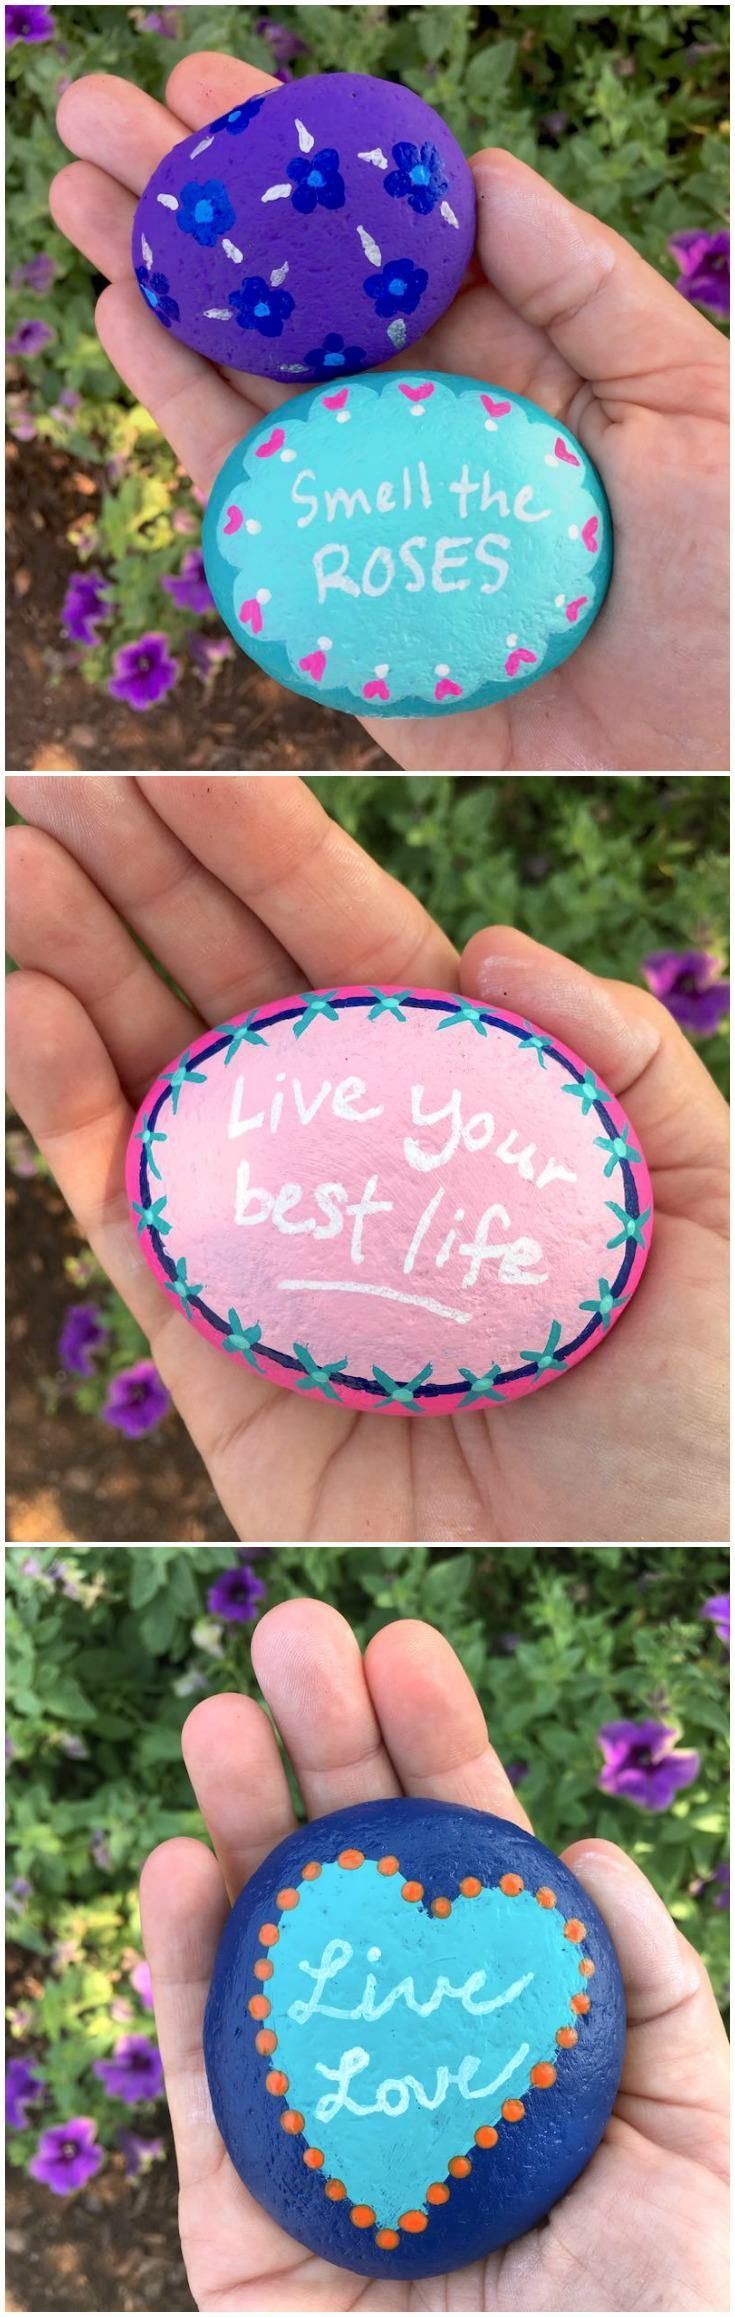 Do you need DIY rock painting ideas for spreading rocks around your neighborhood or the Kindness Rocks Project? Here's some inspiration with my best tips! Rock painting is easy and fun, even for kids. Make these for gifts or for the garden!